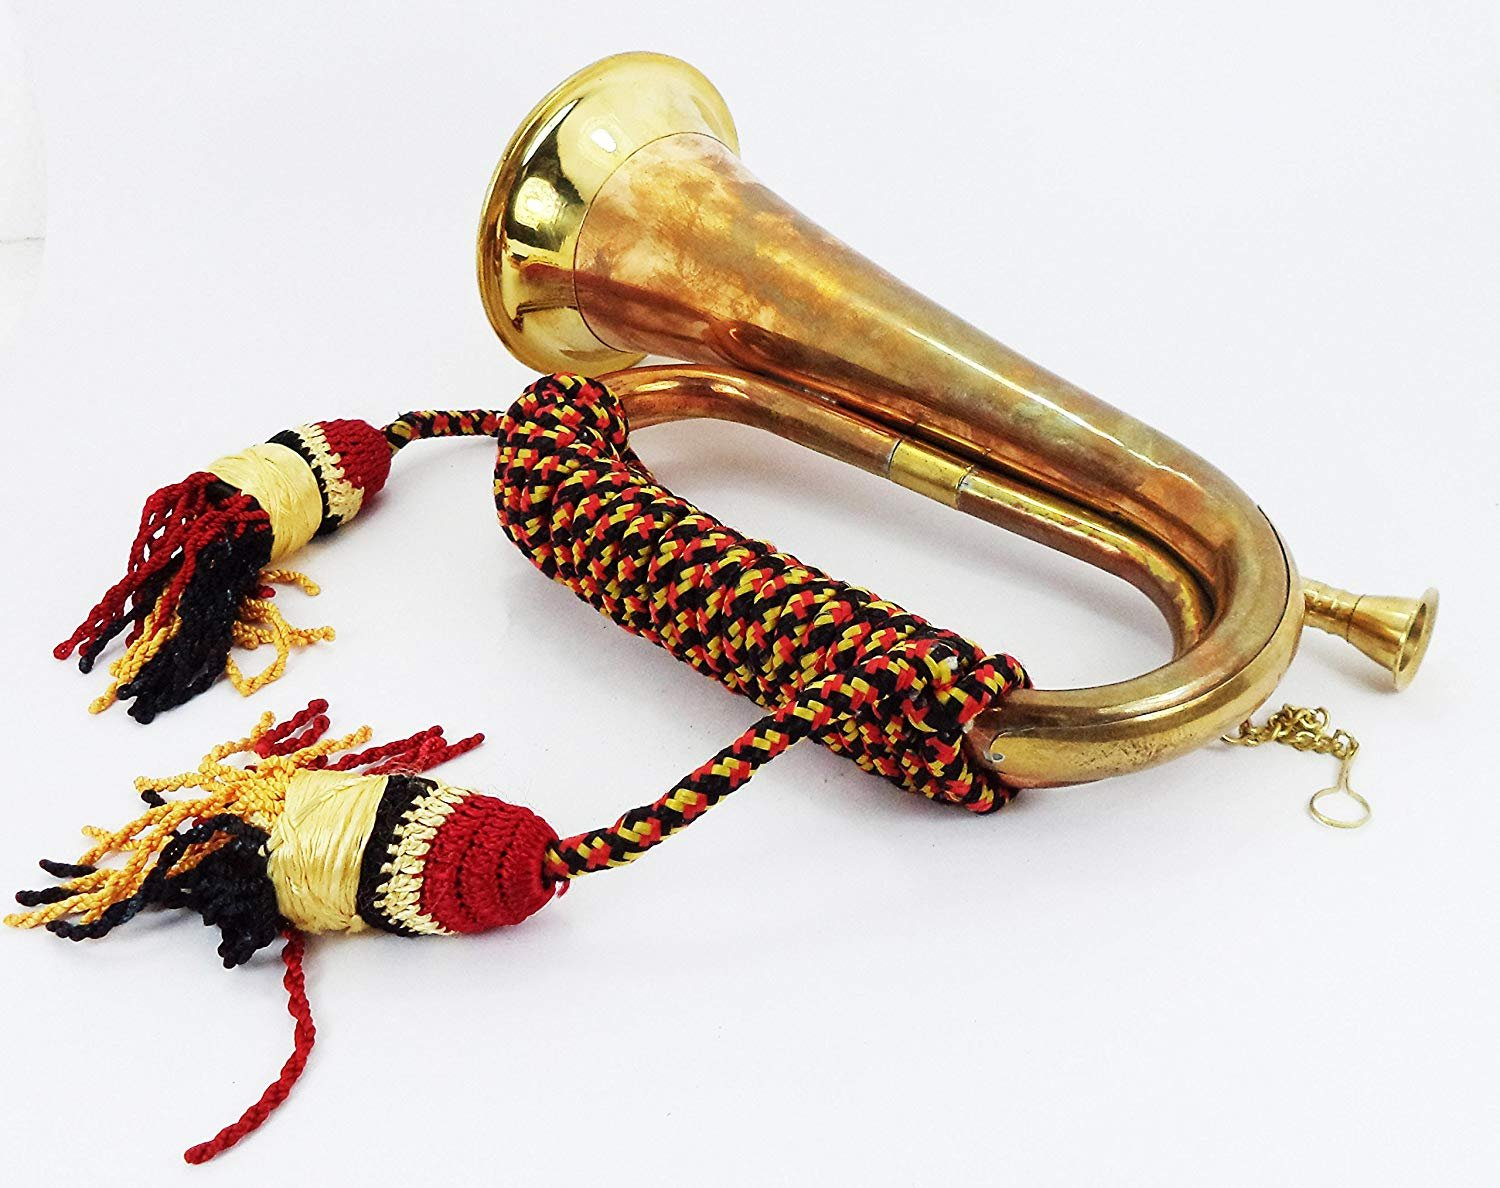 Annafi Solid Brass And Copper Blowing Bugle Attack War Command Signal Horn US Military Cavalry Horn Classic Style Brass Boy Scout Retro Bugle Horn